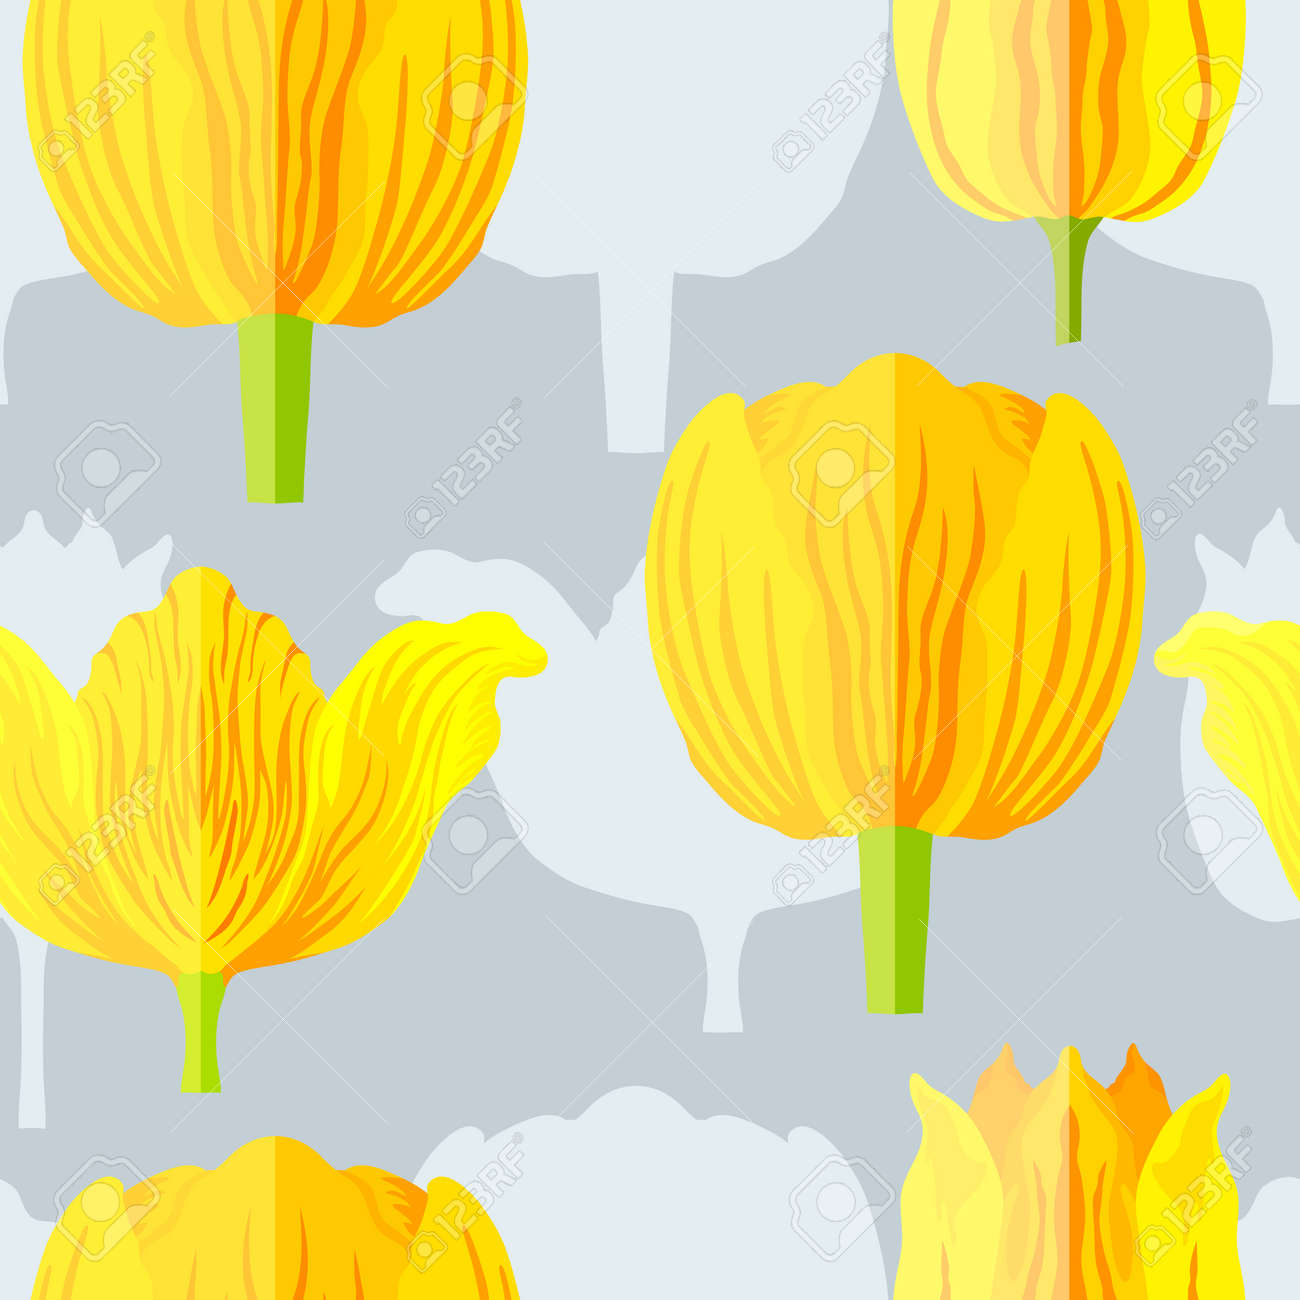 Seamless pattern with three types of yellow with orange tulips. Blue silhouettes of the same tulips on the bottom layer. Varietal tulips without leaves. Pattern for fabrics, print, web usage etc. - 168336265